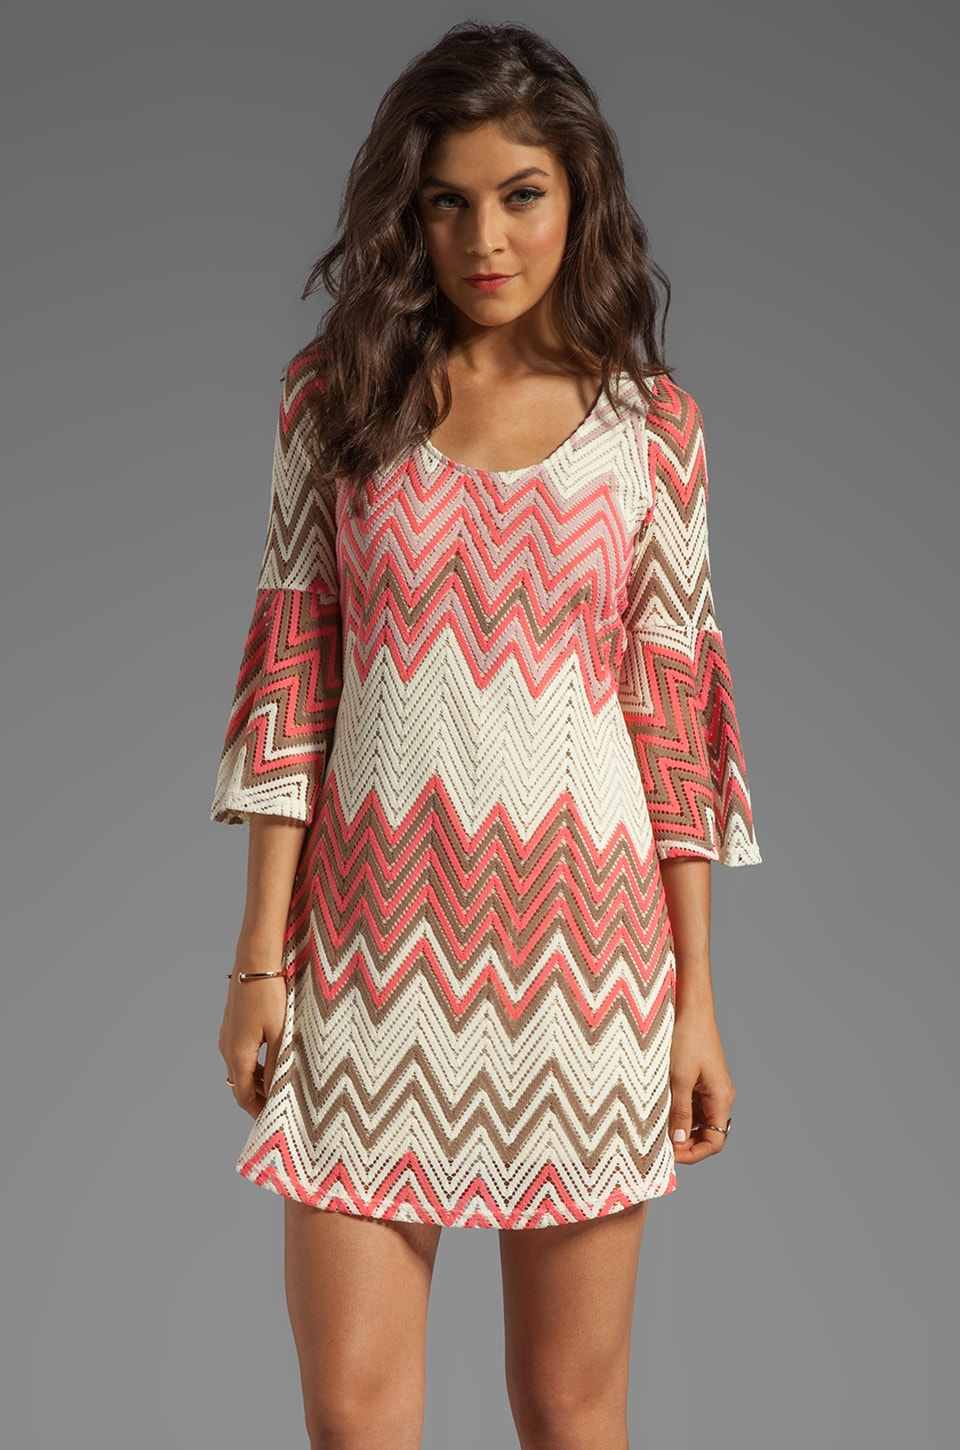 VAVA by Joy Han Madeline Bell Sleeve Dress in Coral